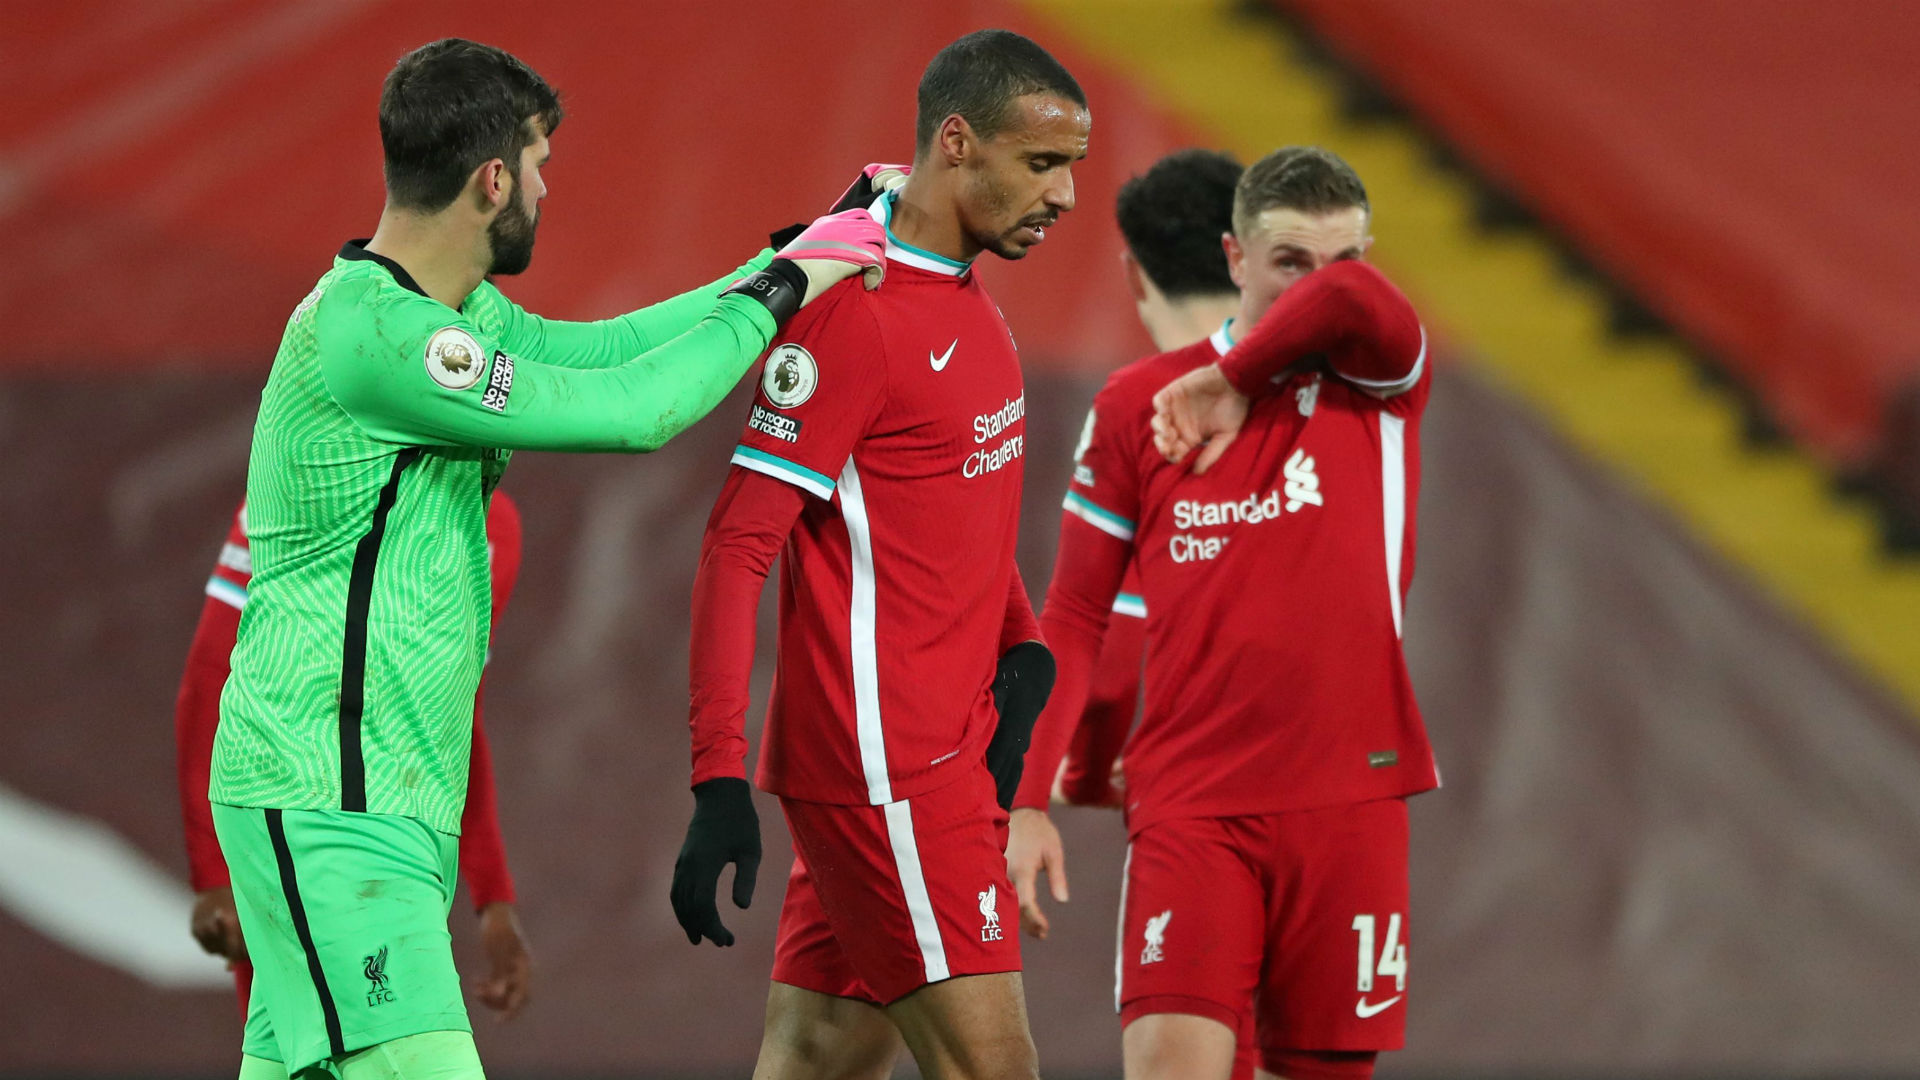 Matip set to miss three weeks with groin injury, confirms Klopp